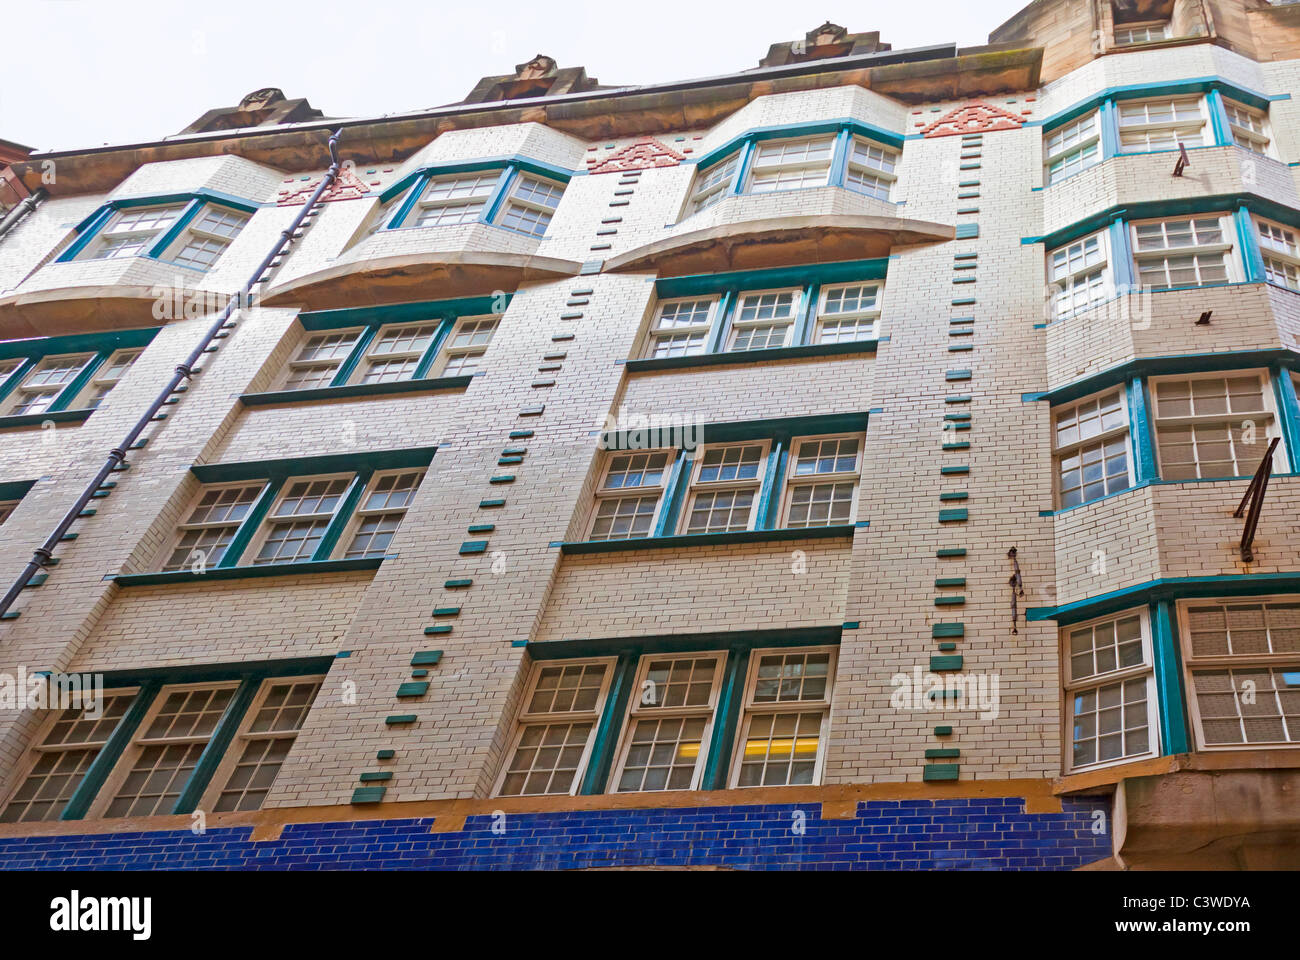 Facade of the Daily Record Building, designed by Glasgow Architect Charles Rennie Mackintosh, opened in 1904. Art - Stock Image